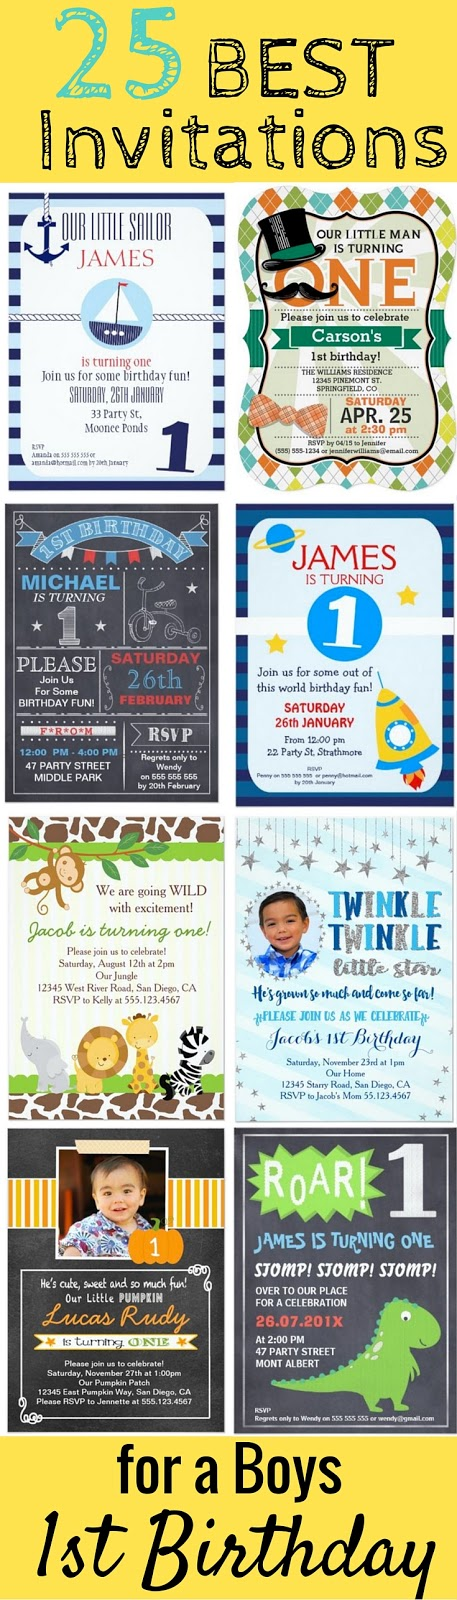 The 25 BEST 1st Birthday Party Invitations for Boys - Your little man is turning one! Having too many options and ideas for party invites can be overwhelming, so I've searched through hundreds of first birthday invites for boys and compiled what I think are the very best ones to get. I personally like the nautical designs, and the ones with a mustache. All of these invitations are personalizable, but I love the templates that allow you to upload your own custom picture of your little one. ♡